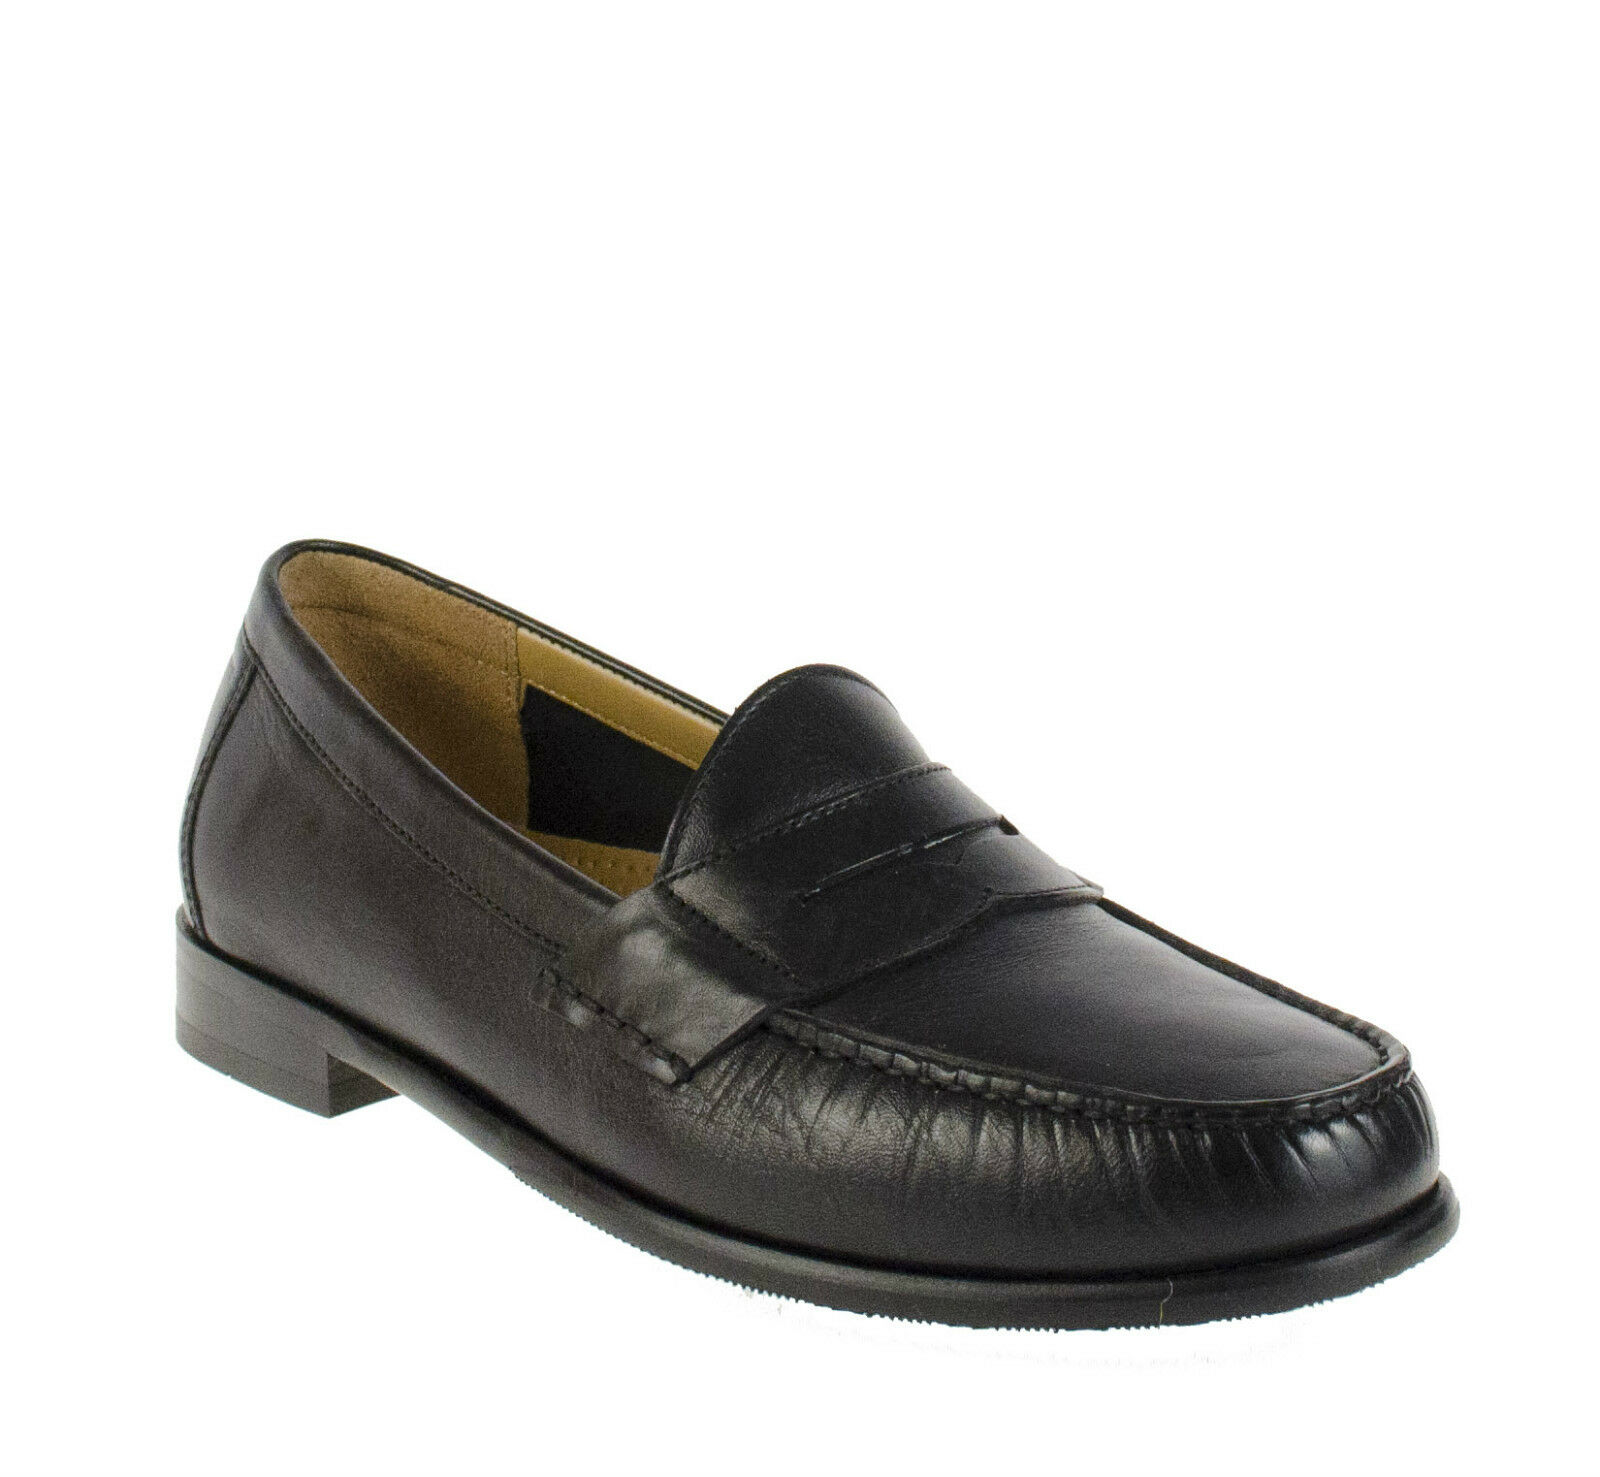 COLE HAAN ASCOT PENNY II Noir Homme Mocassin Enfiler Chaussures Multi Tailles